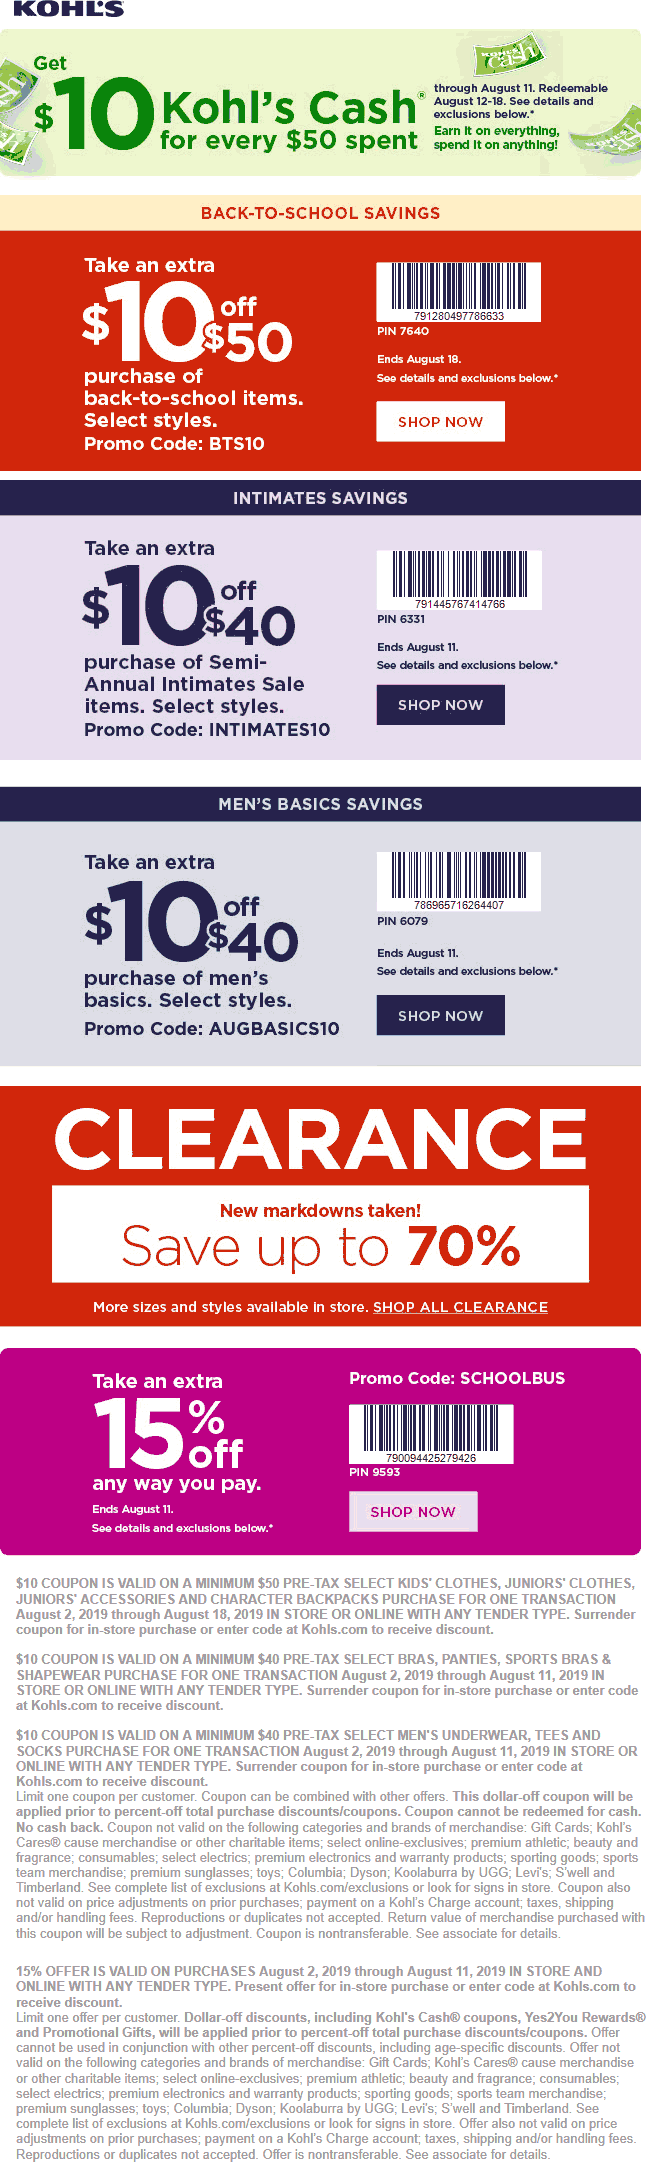 Kohls Coupon November 2019 Extra 15% off & more at Kohls, or online via promo code SCHOOLBUS